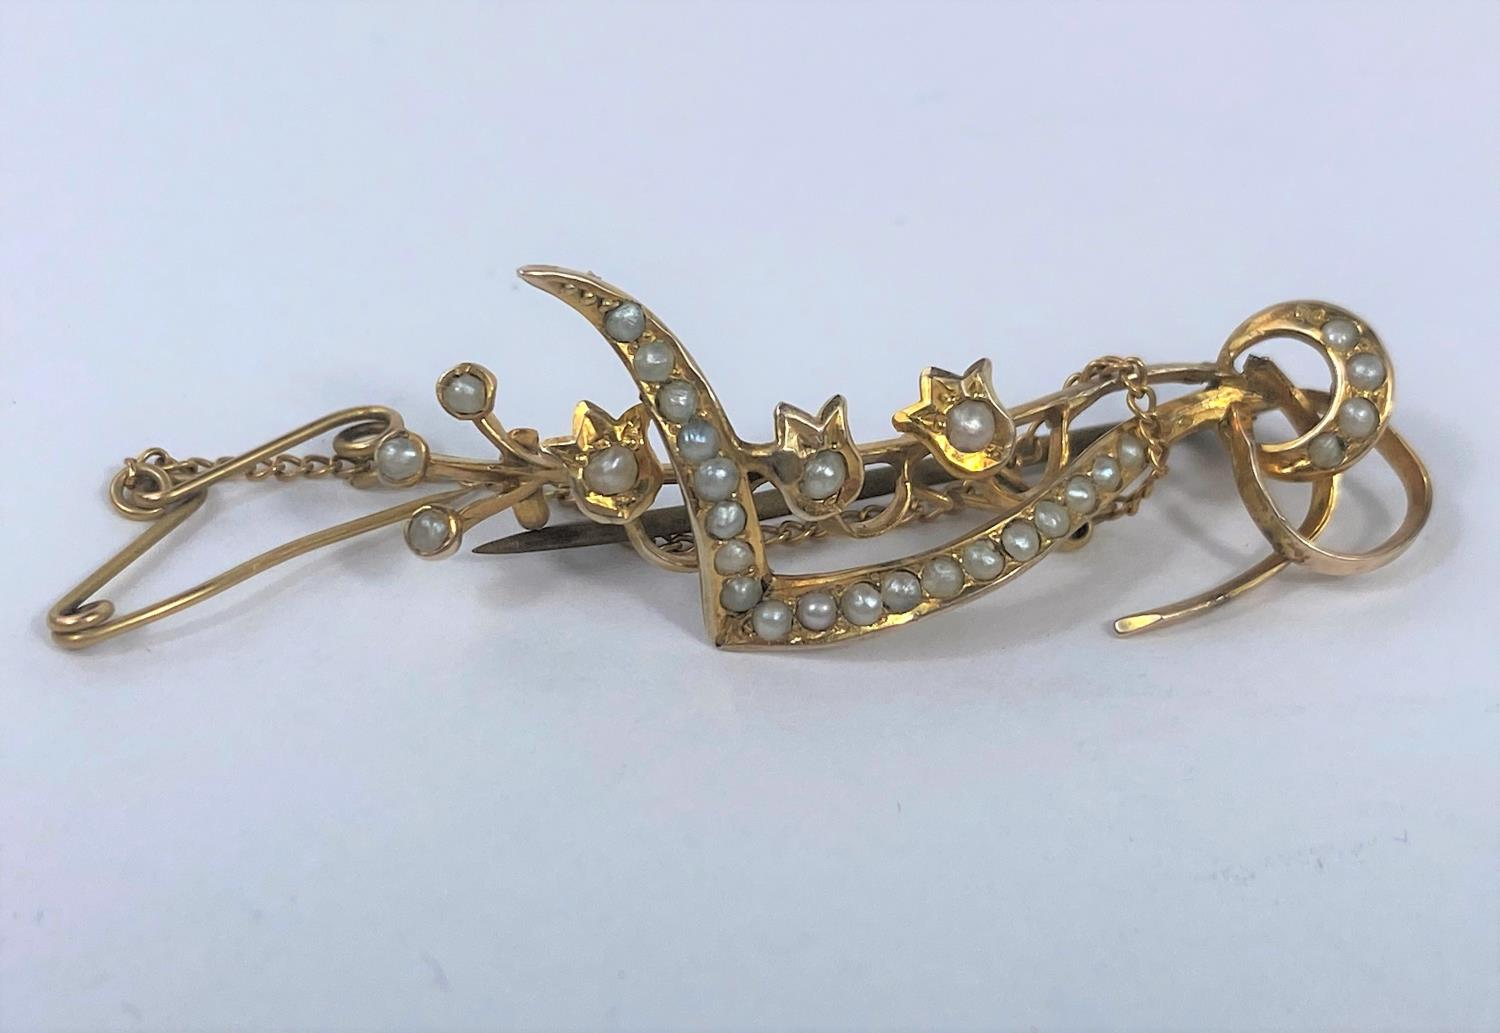 An ornate bar brooch set seed pearls, stamped '9ct'; a yellow metal bar brooch set seed pearl and - Image 2 of 3